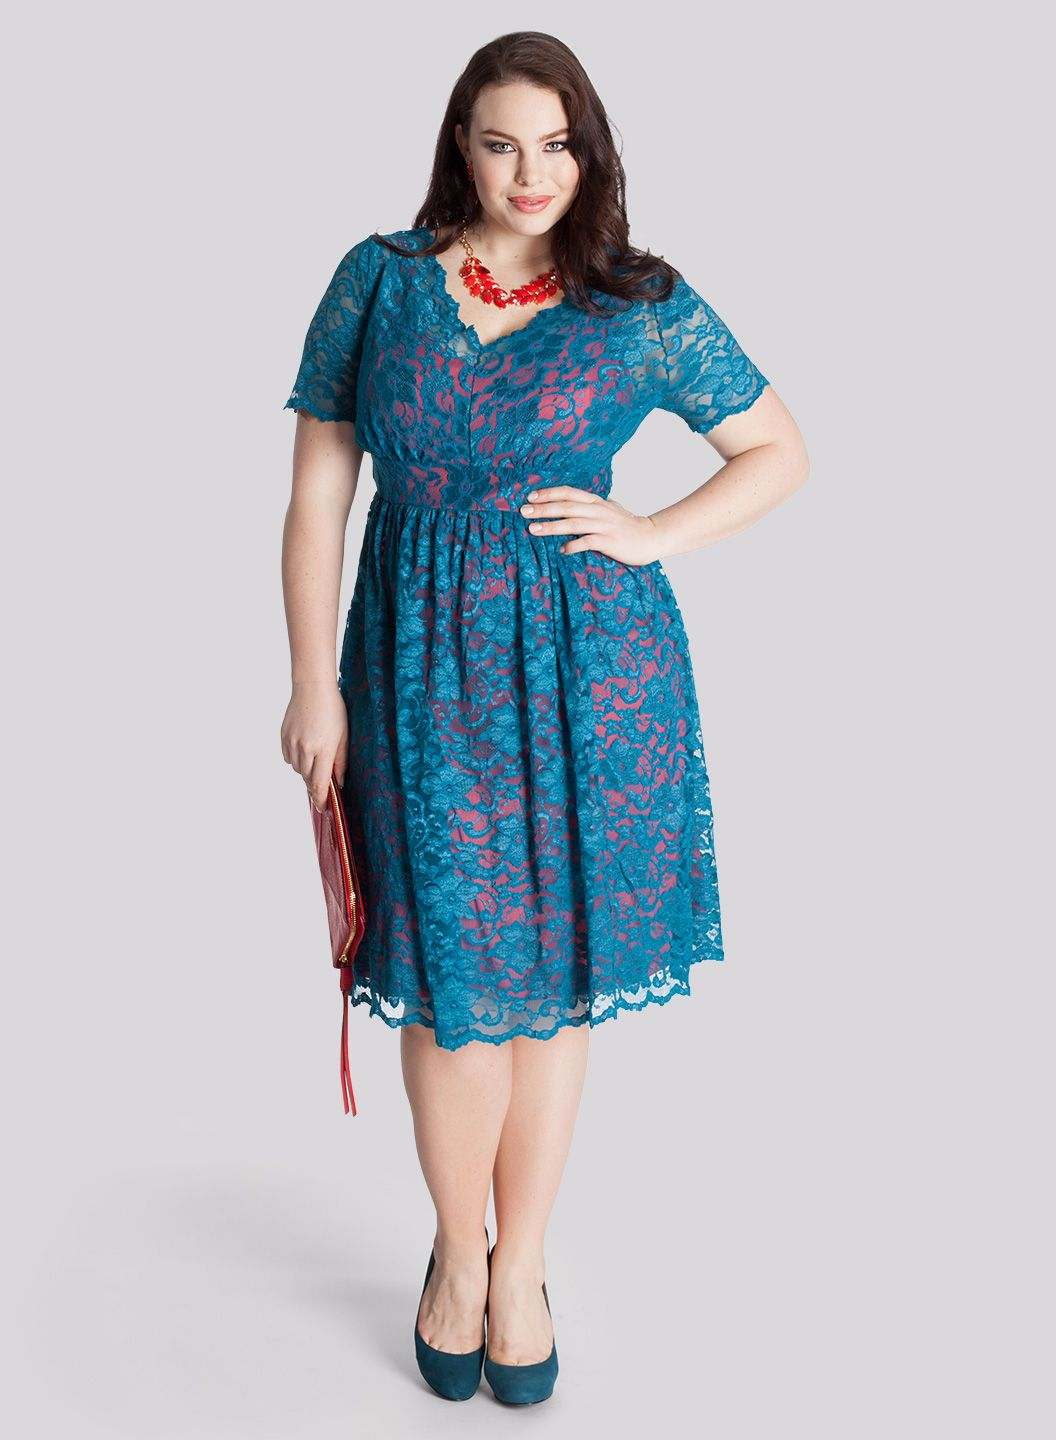 Plus Size Wedding Guest Dresses for Summer | Island wedding ...